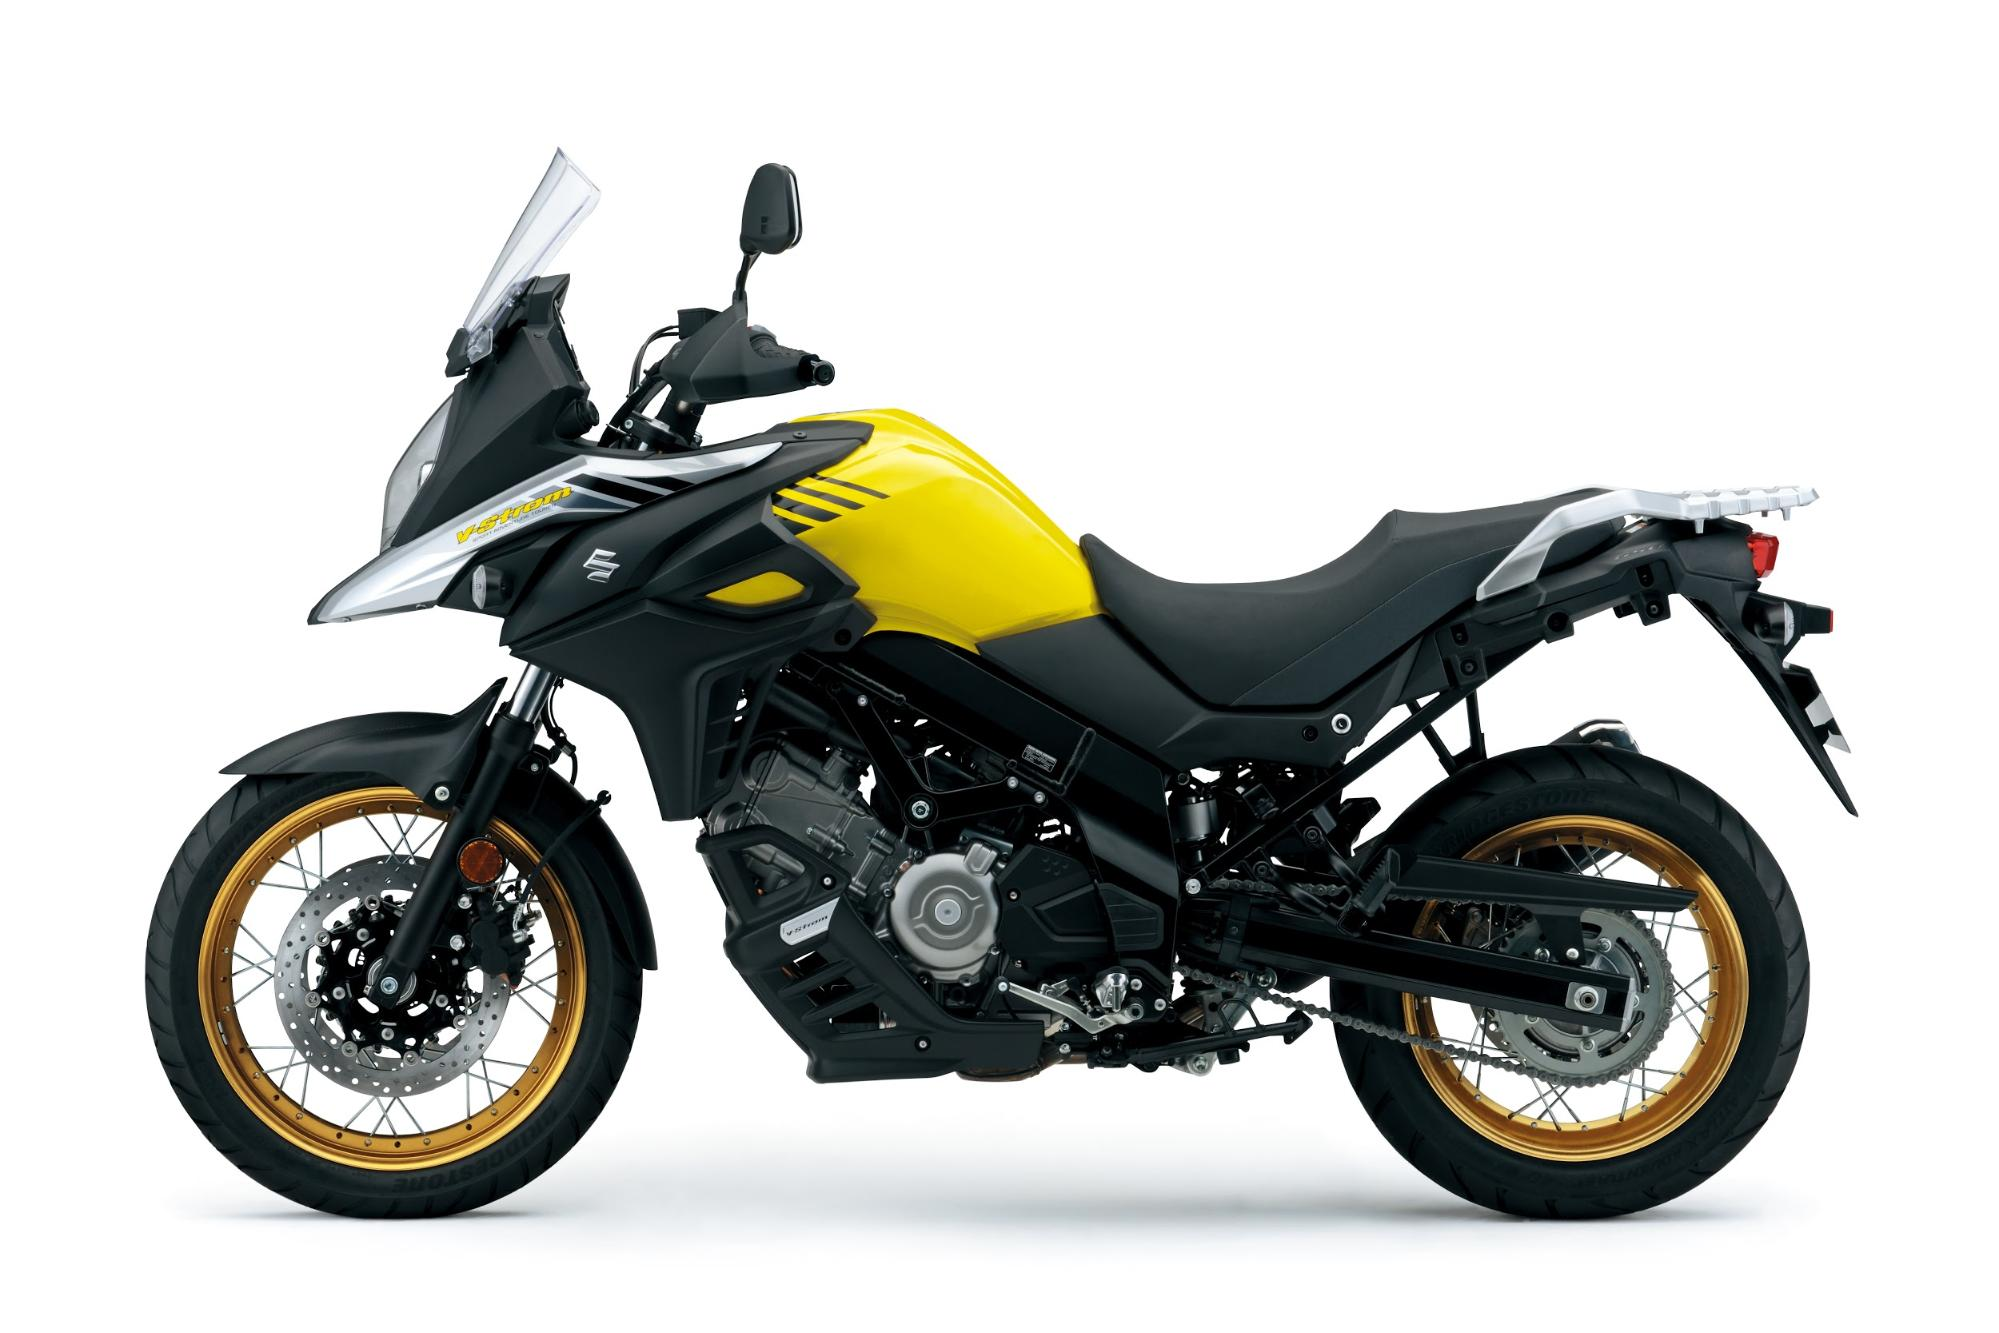 2018 Suzuki V Strom 650 Xt To Launch In India With Competitive Price